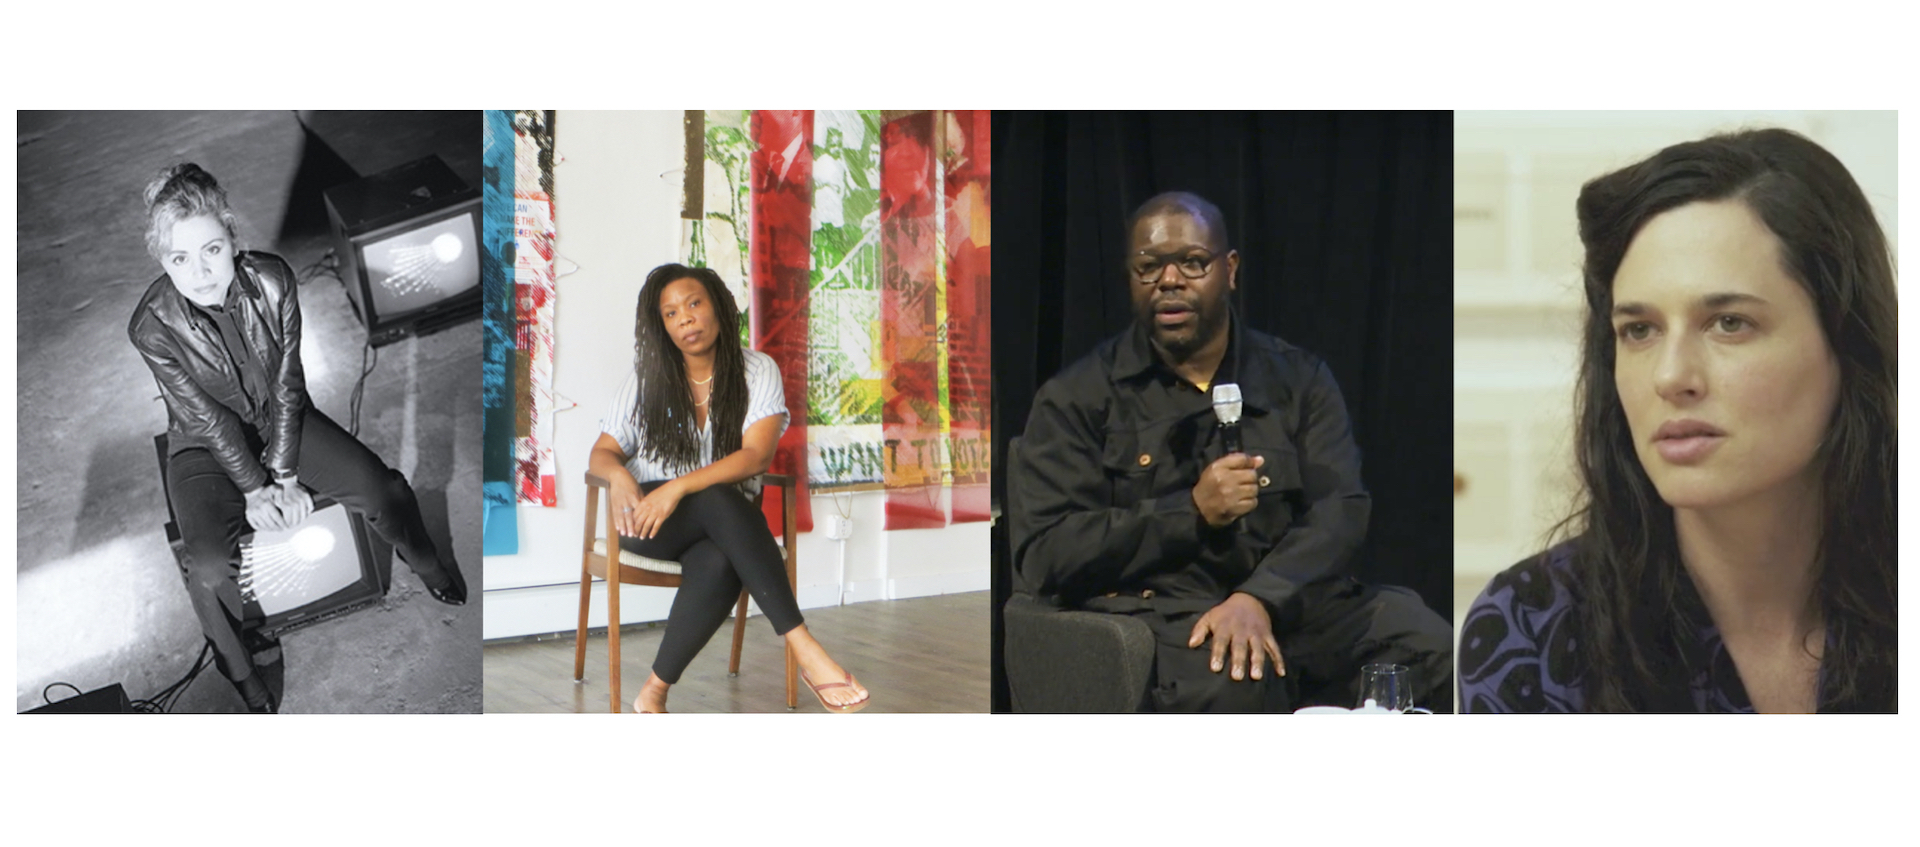 Side by side pictures of visual artists Gretchen Bender, Tomashi Jackson, Steve McQueen and Taryn Simon